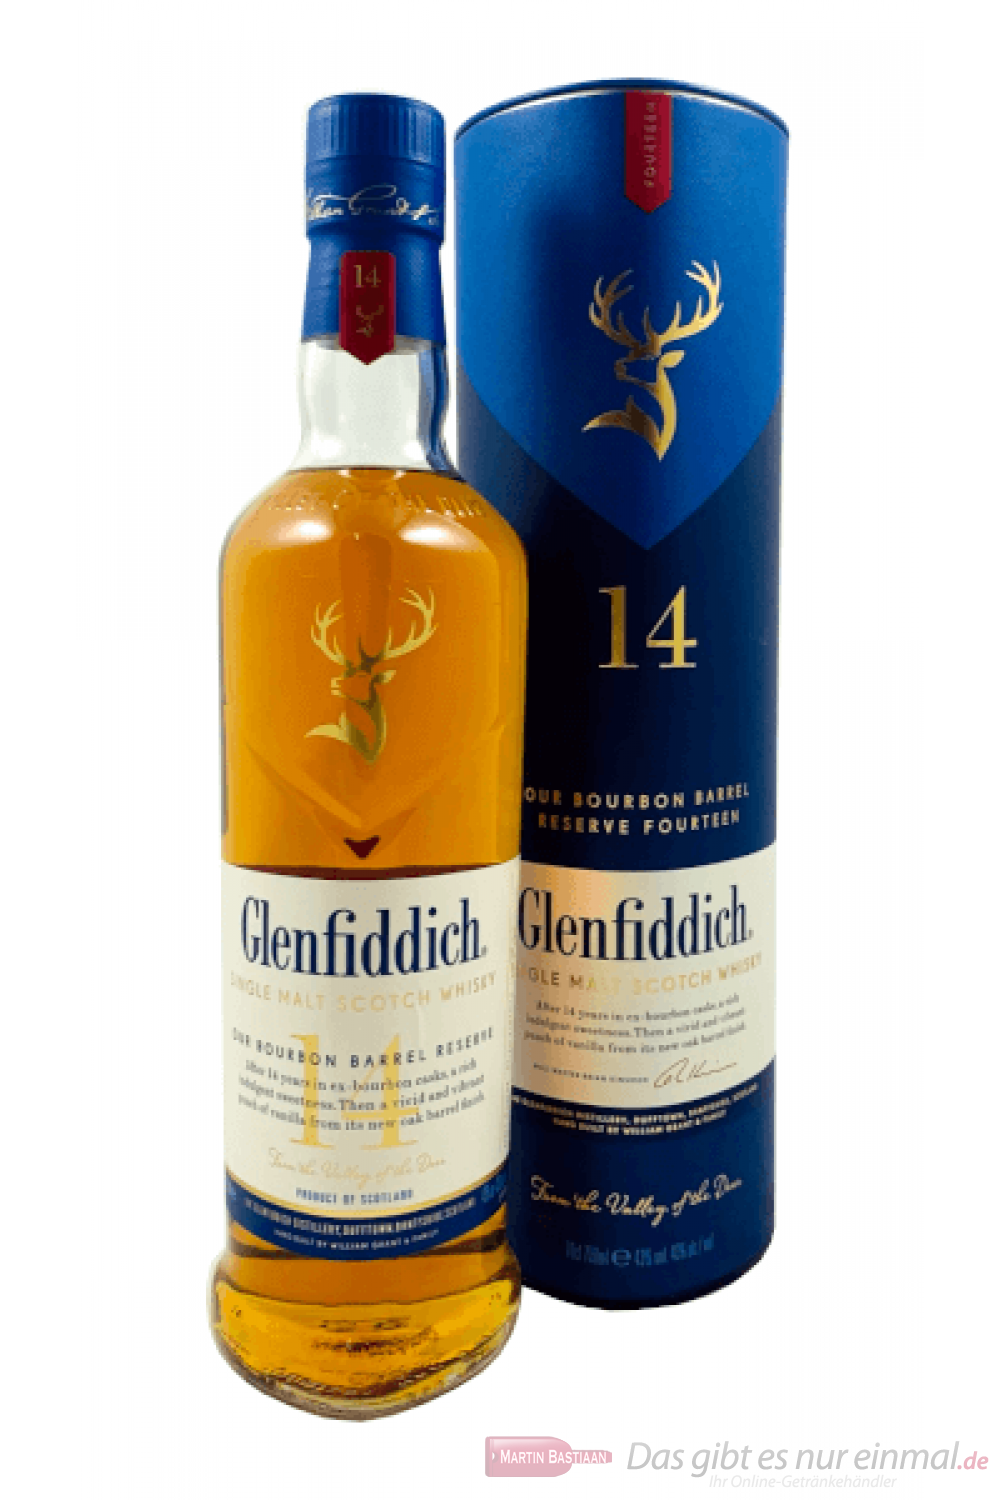 Glenfiddich 14 Years Bourbon Barrel Reserve Single Malt Scotch Whisky 0,7l